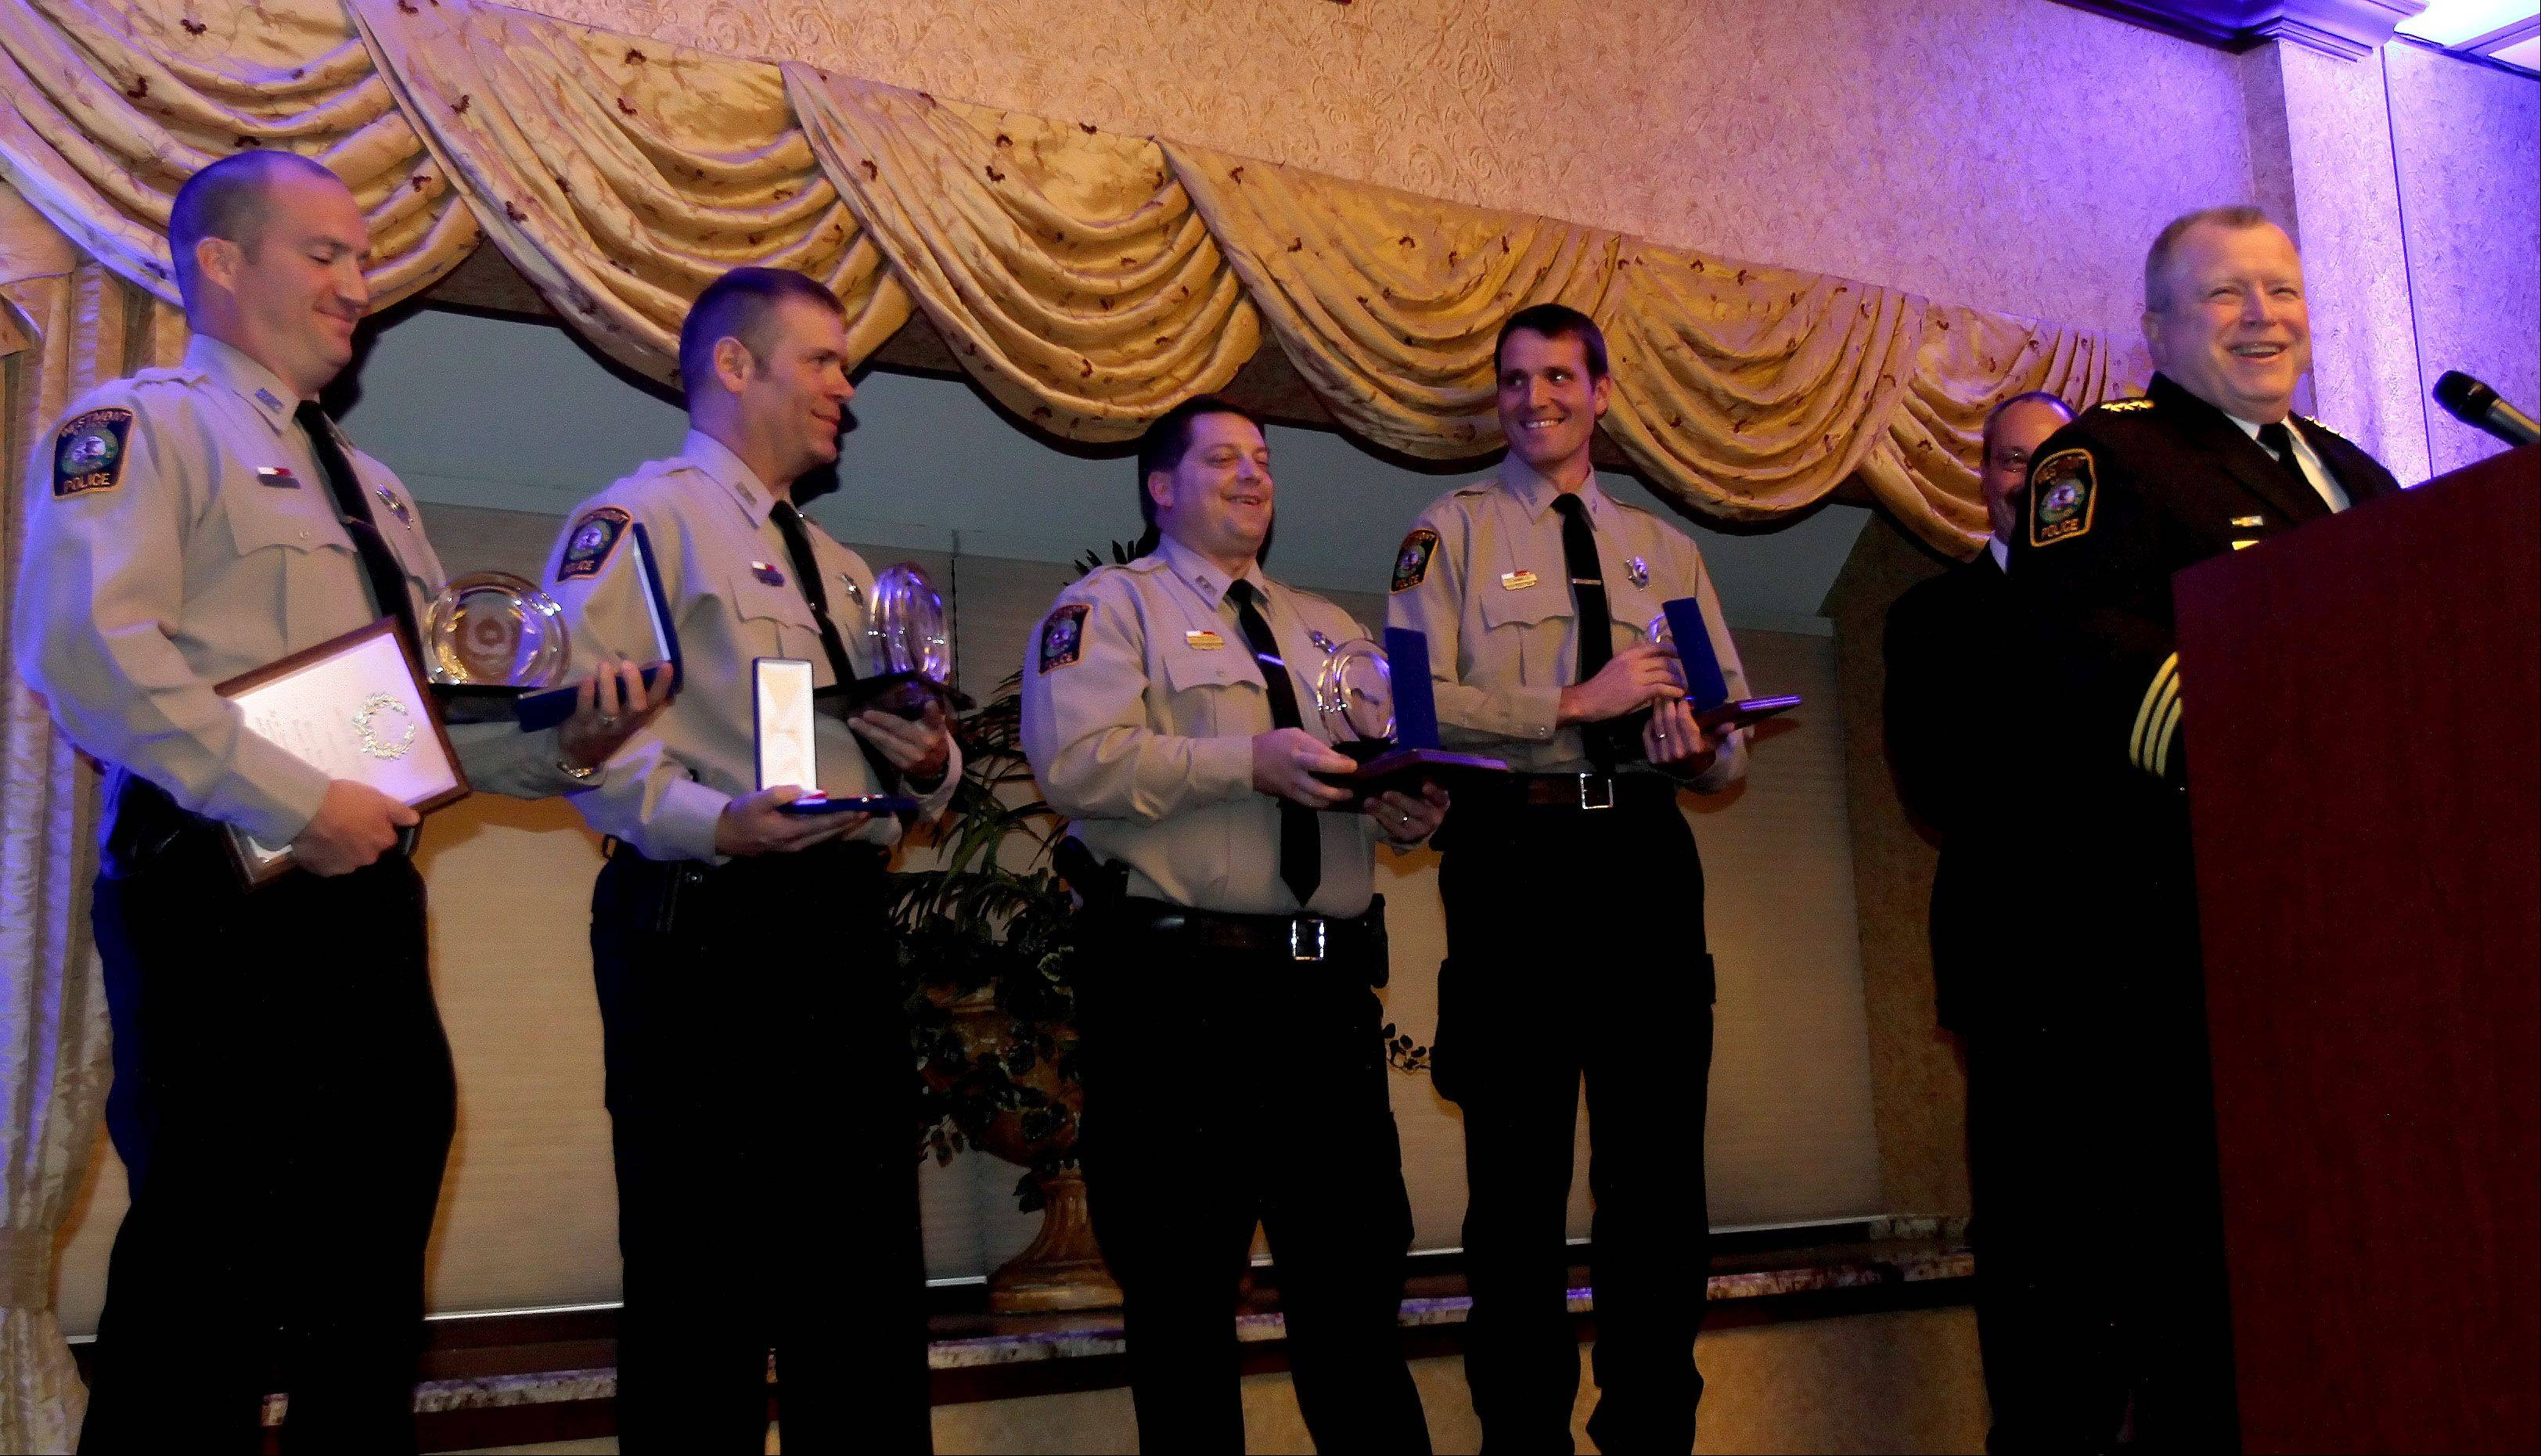 Left to right are Officers Gregory Hausner, John Majeski, Sean Ryan and David Hamblin of the Westmont Police Department. They received Awards of Valor from The Hundred Club of DuPage.